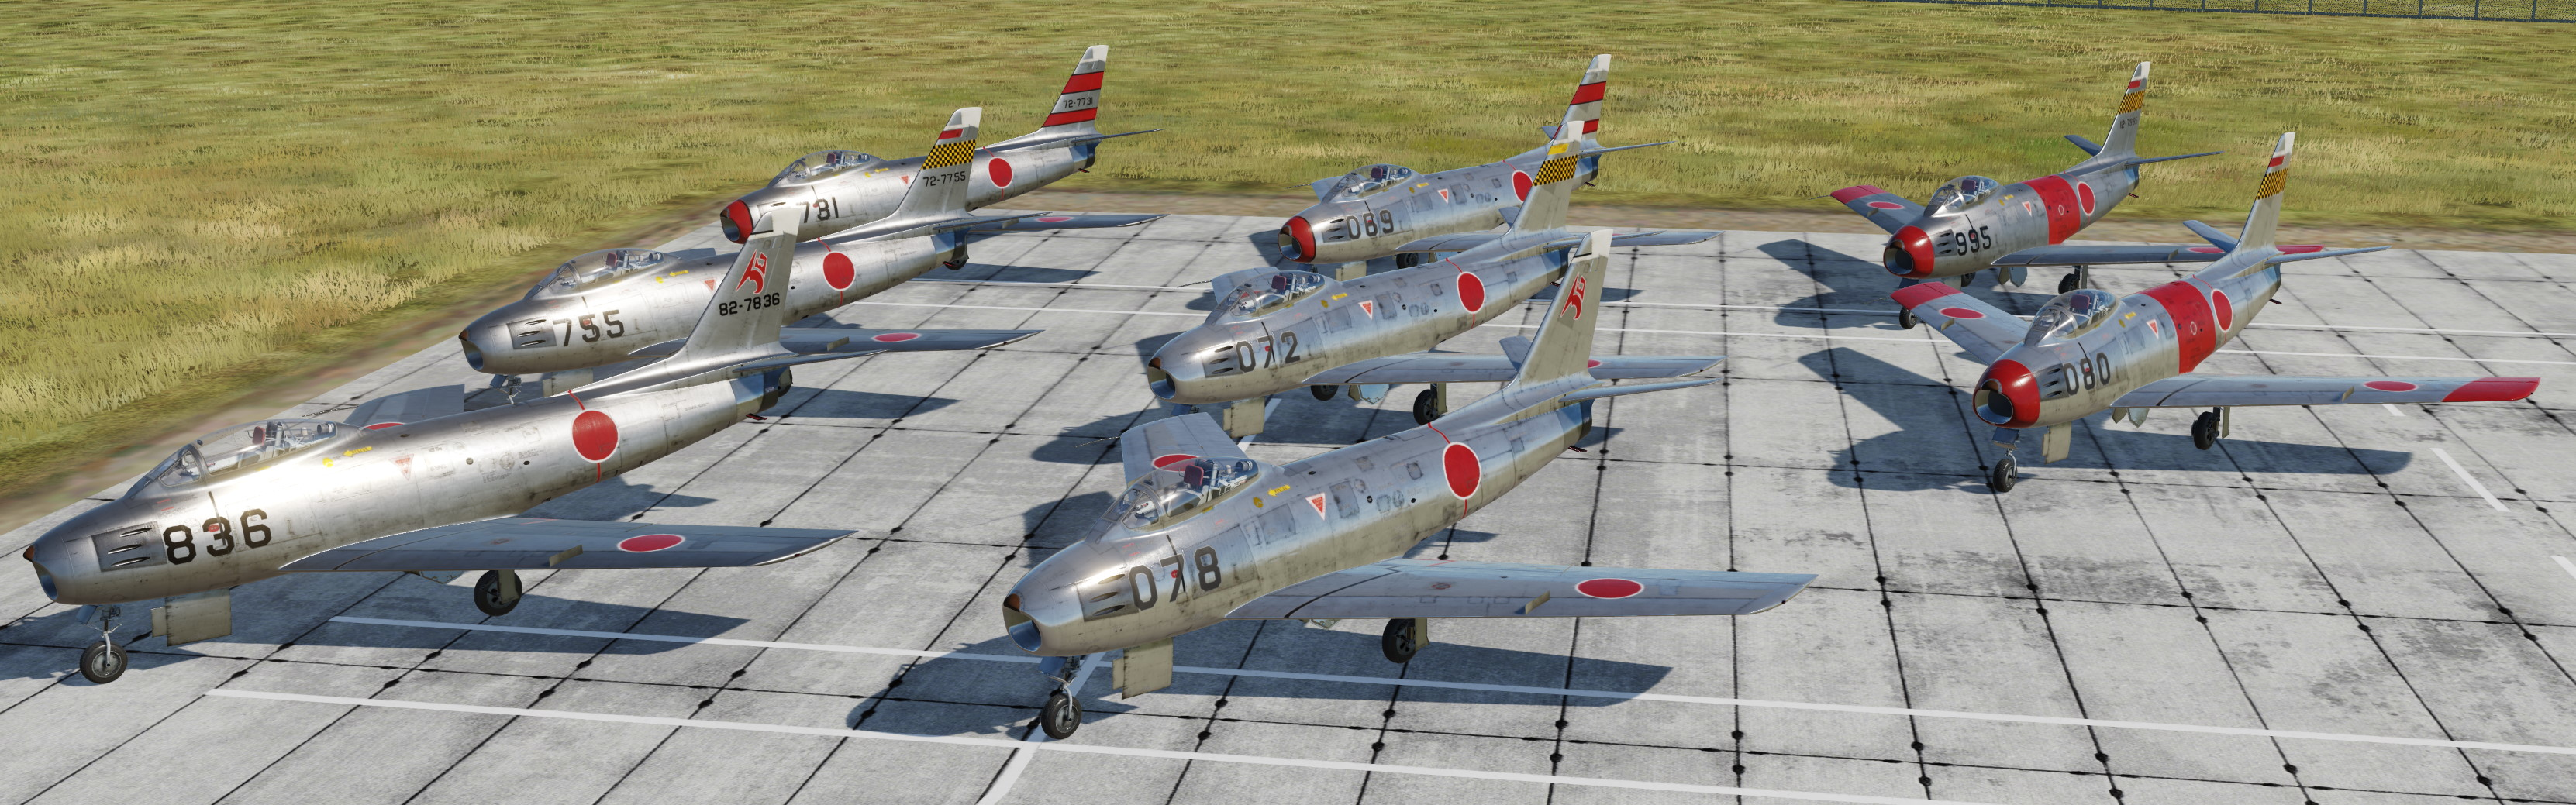 [F-86F] Japan Air Self Defense Forces v3